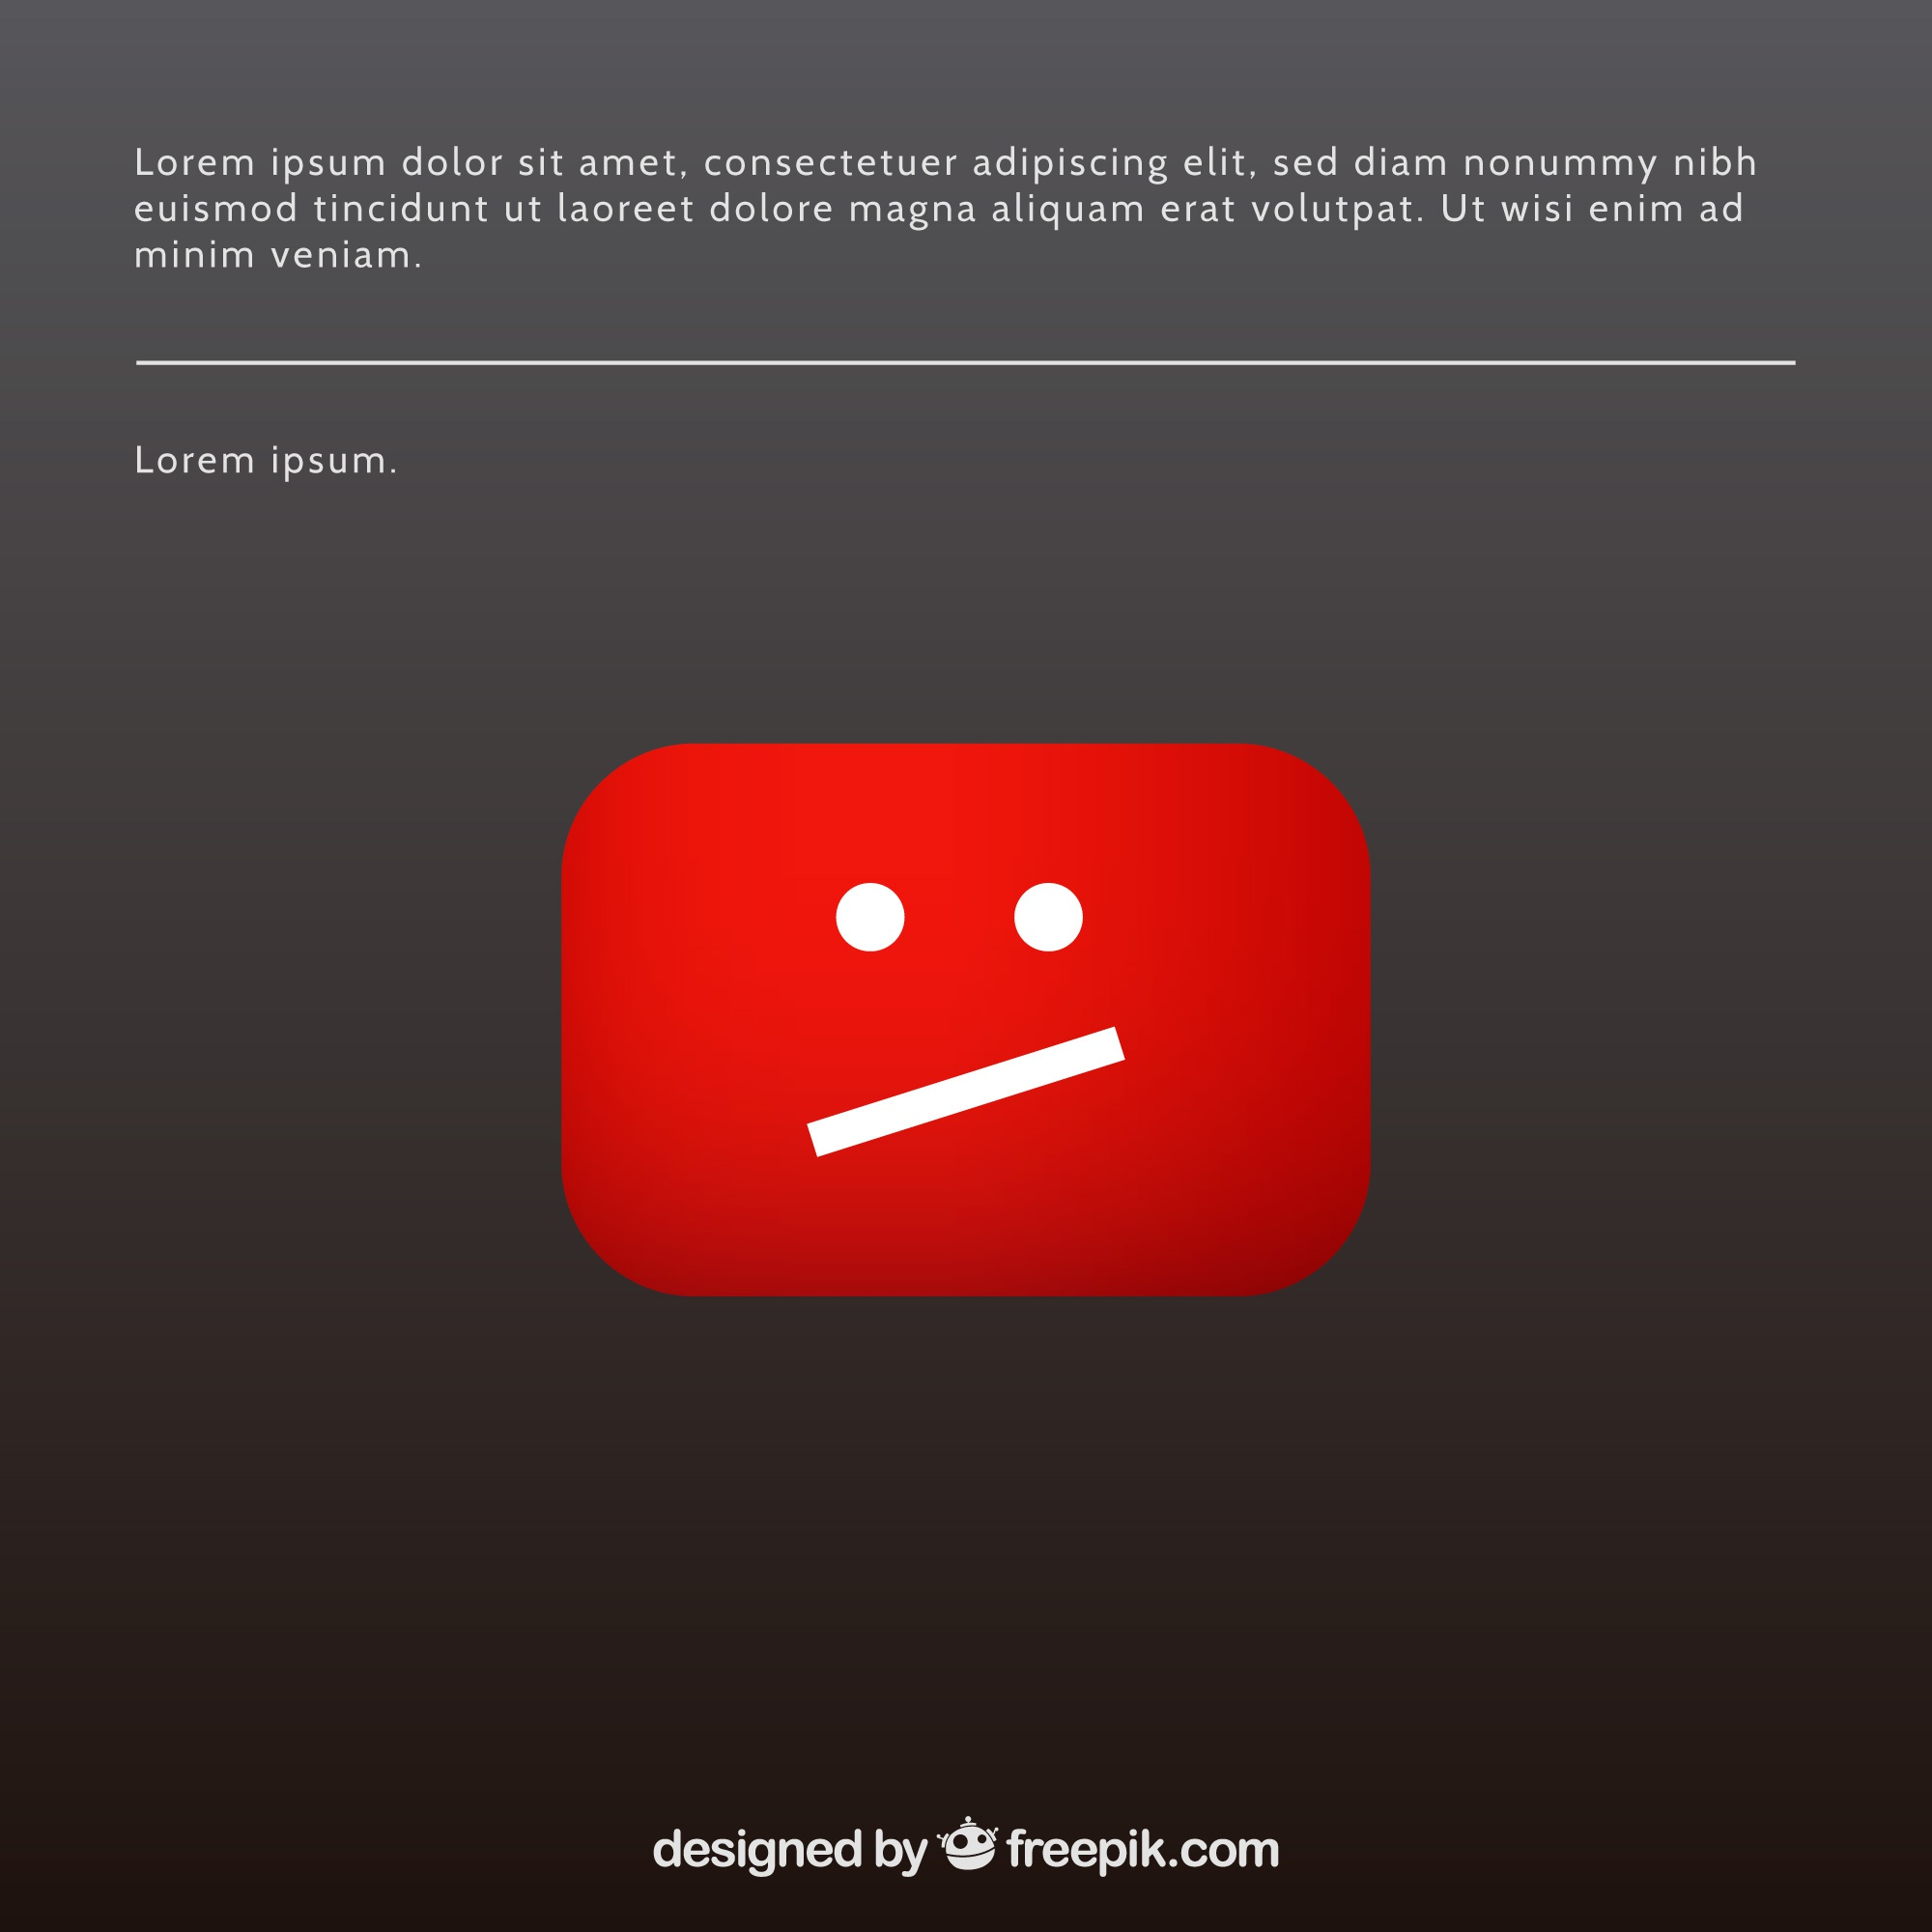 Youtube error message with flat design